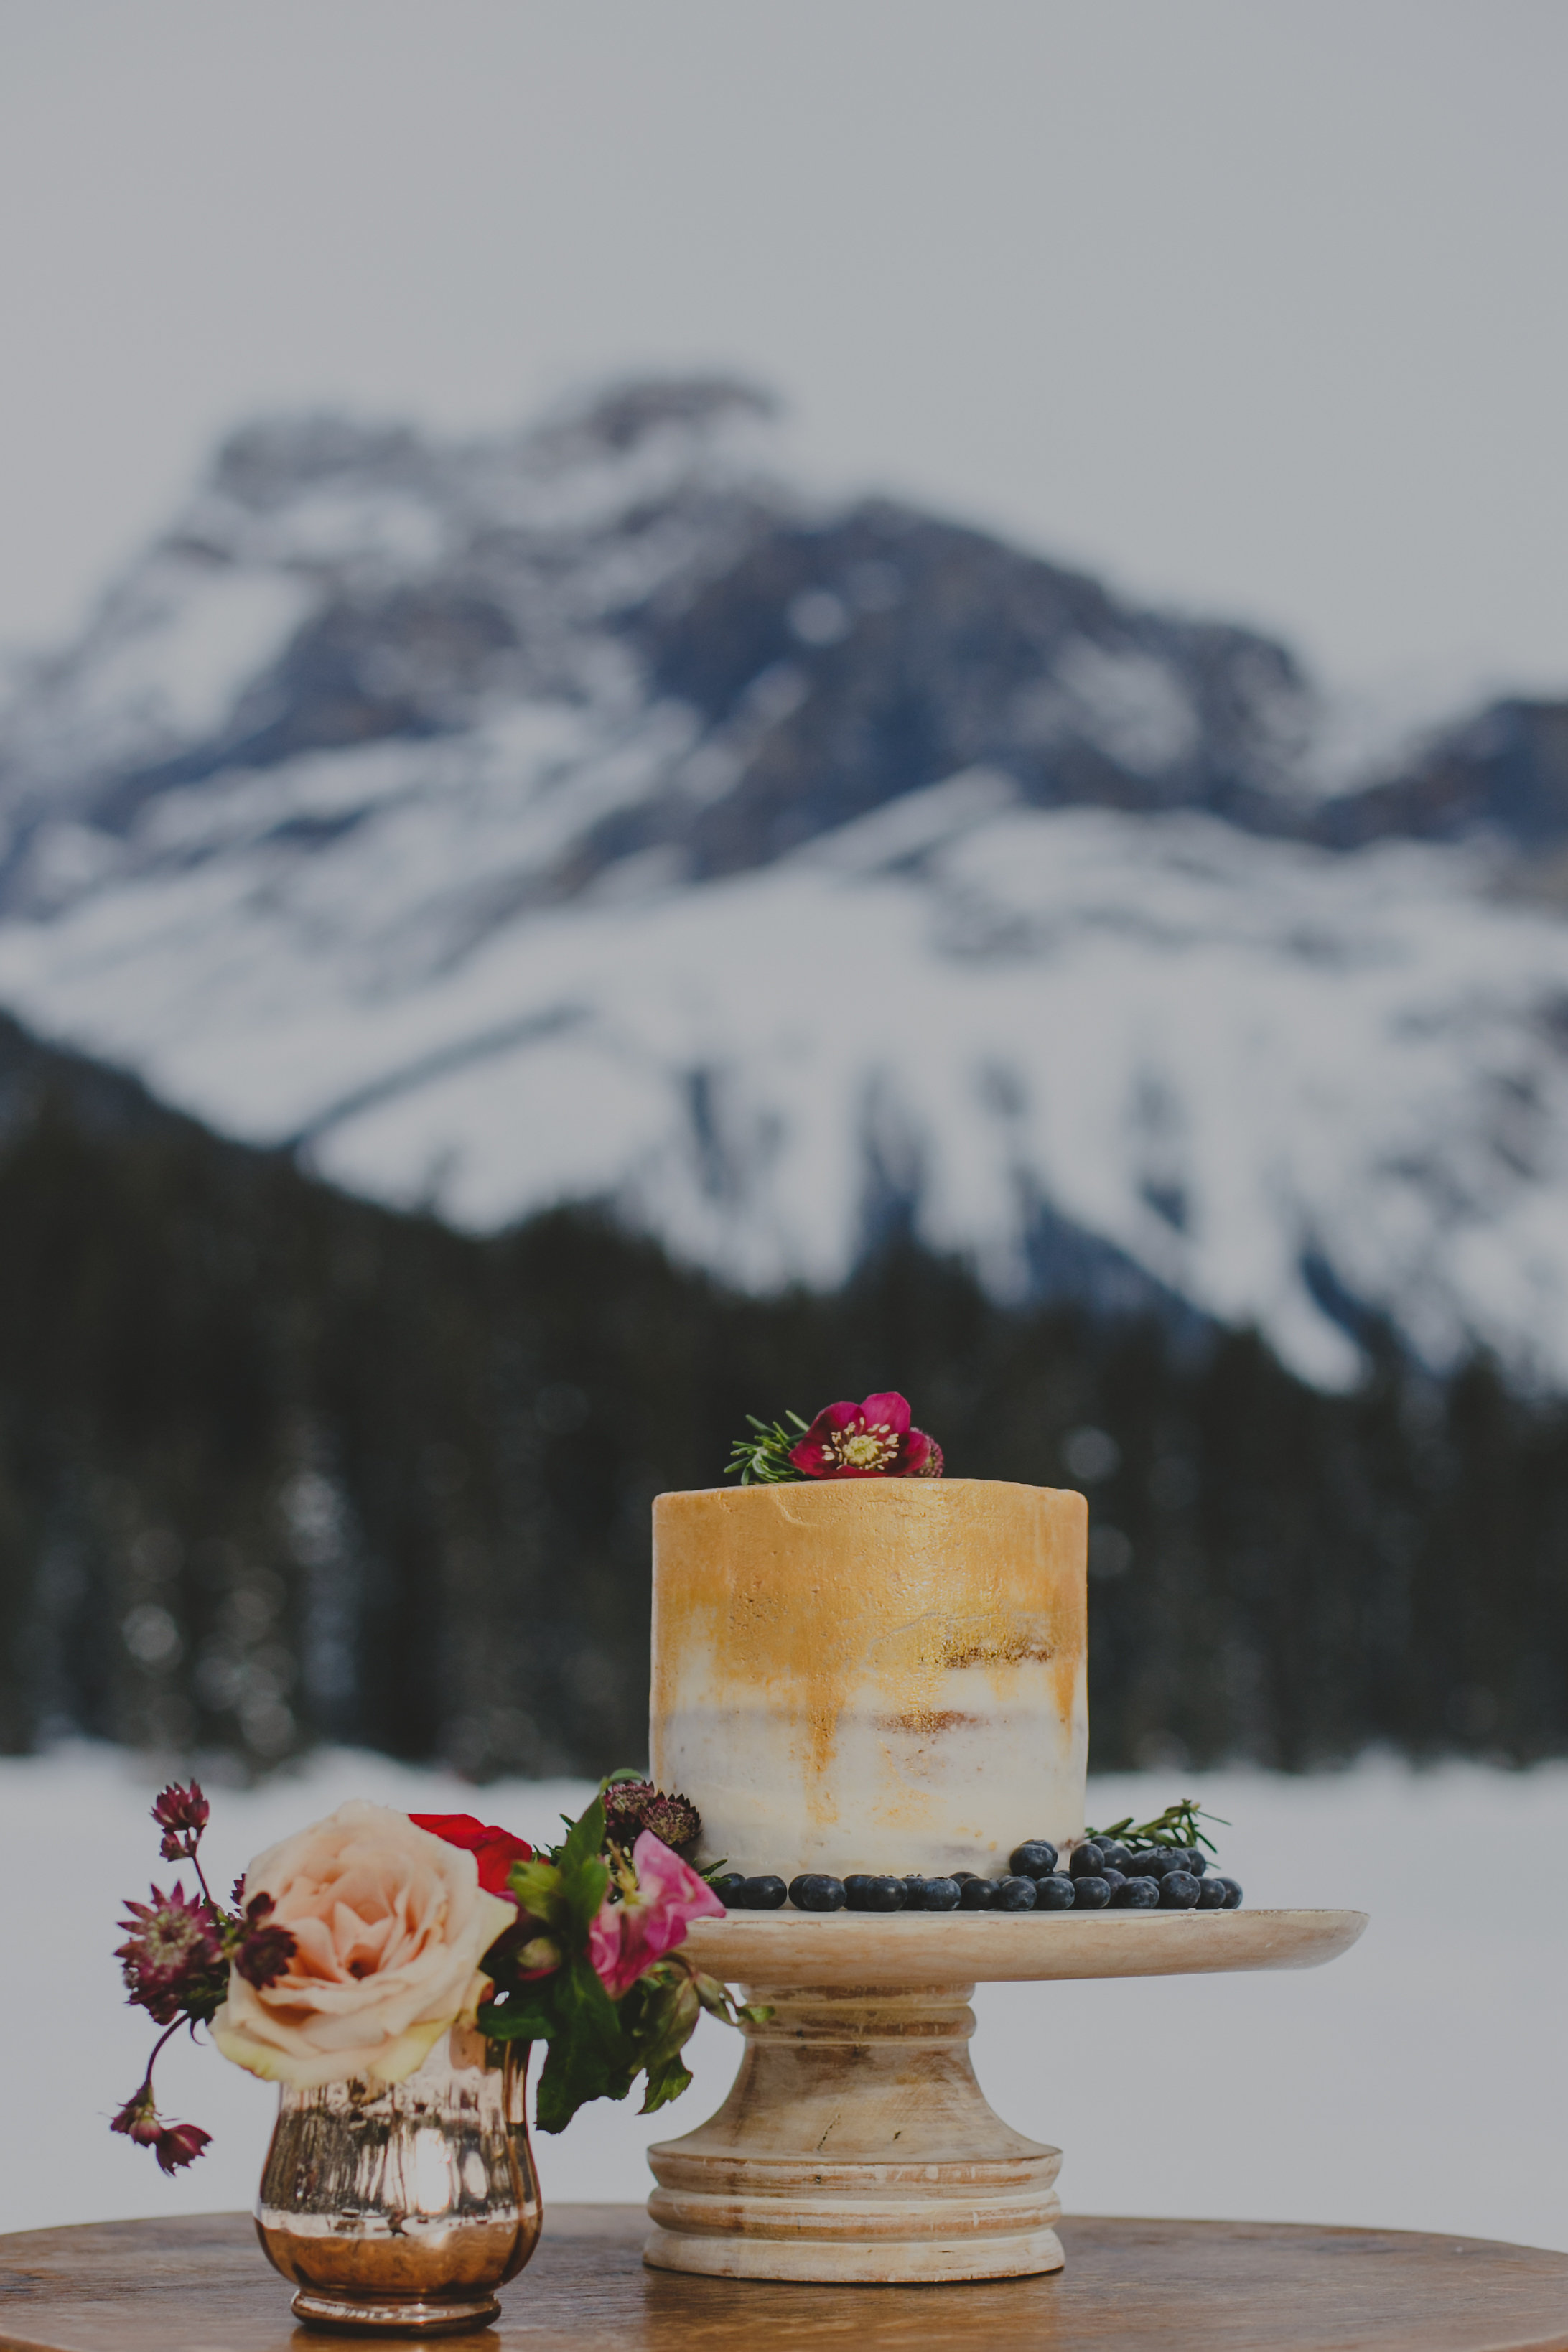 A-EmeraldLake-RockyMountainWedding-Lolo&Noa-1.jpg